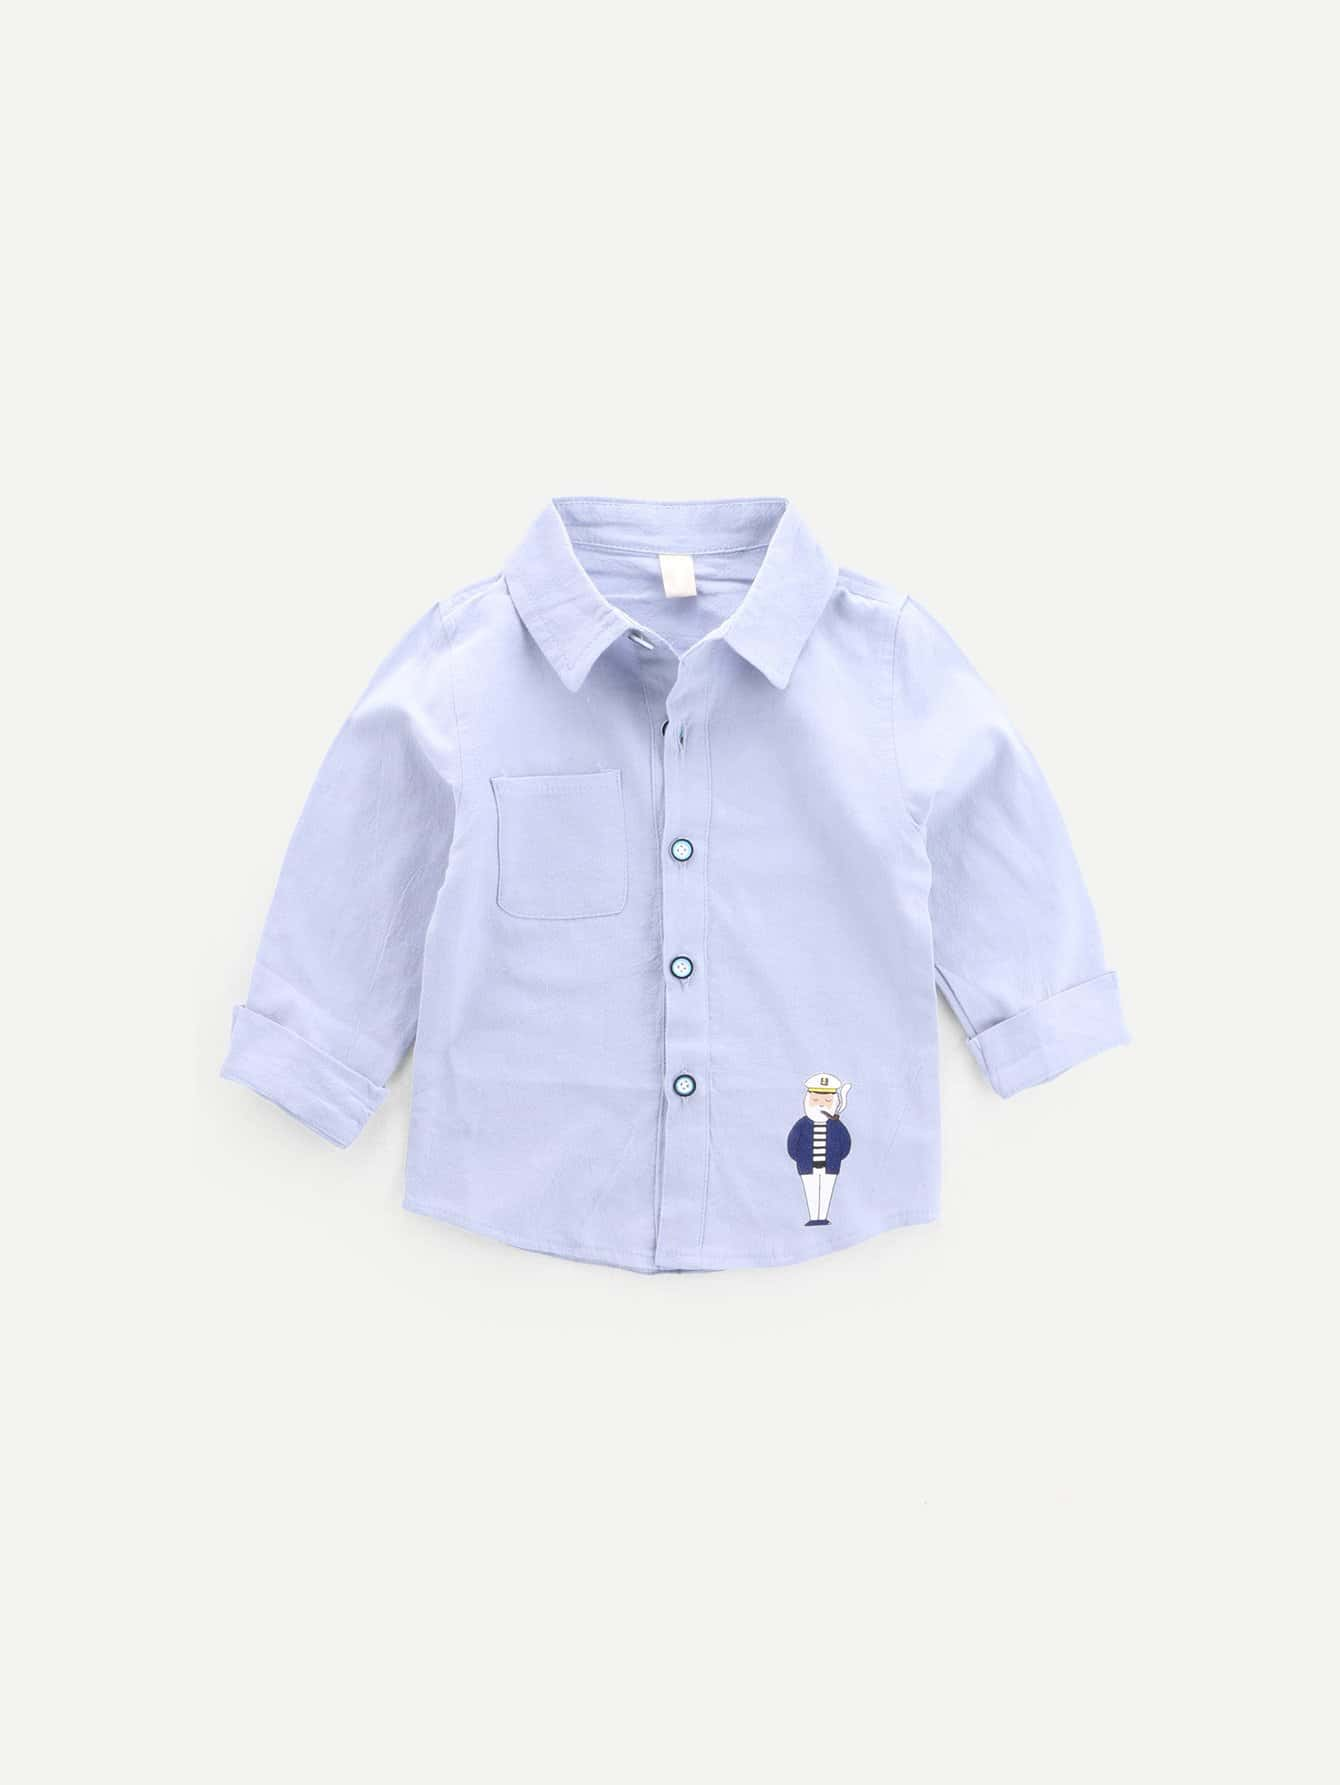 Boys Cartoon Print Shirt megavox ws 06a25